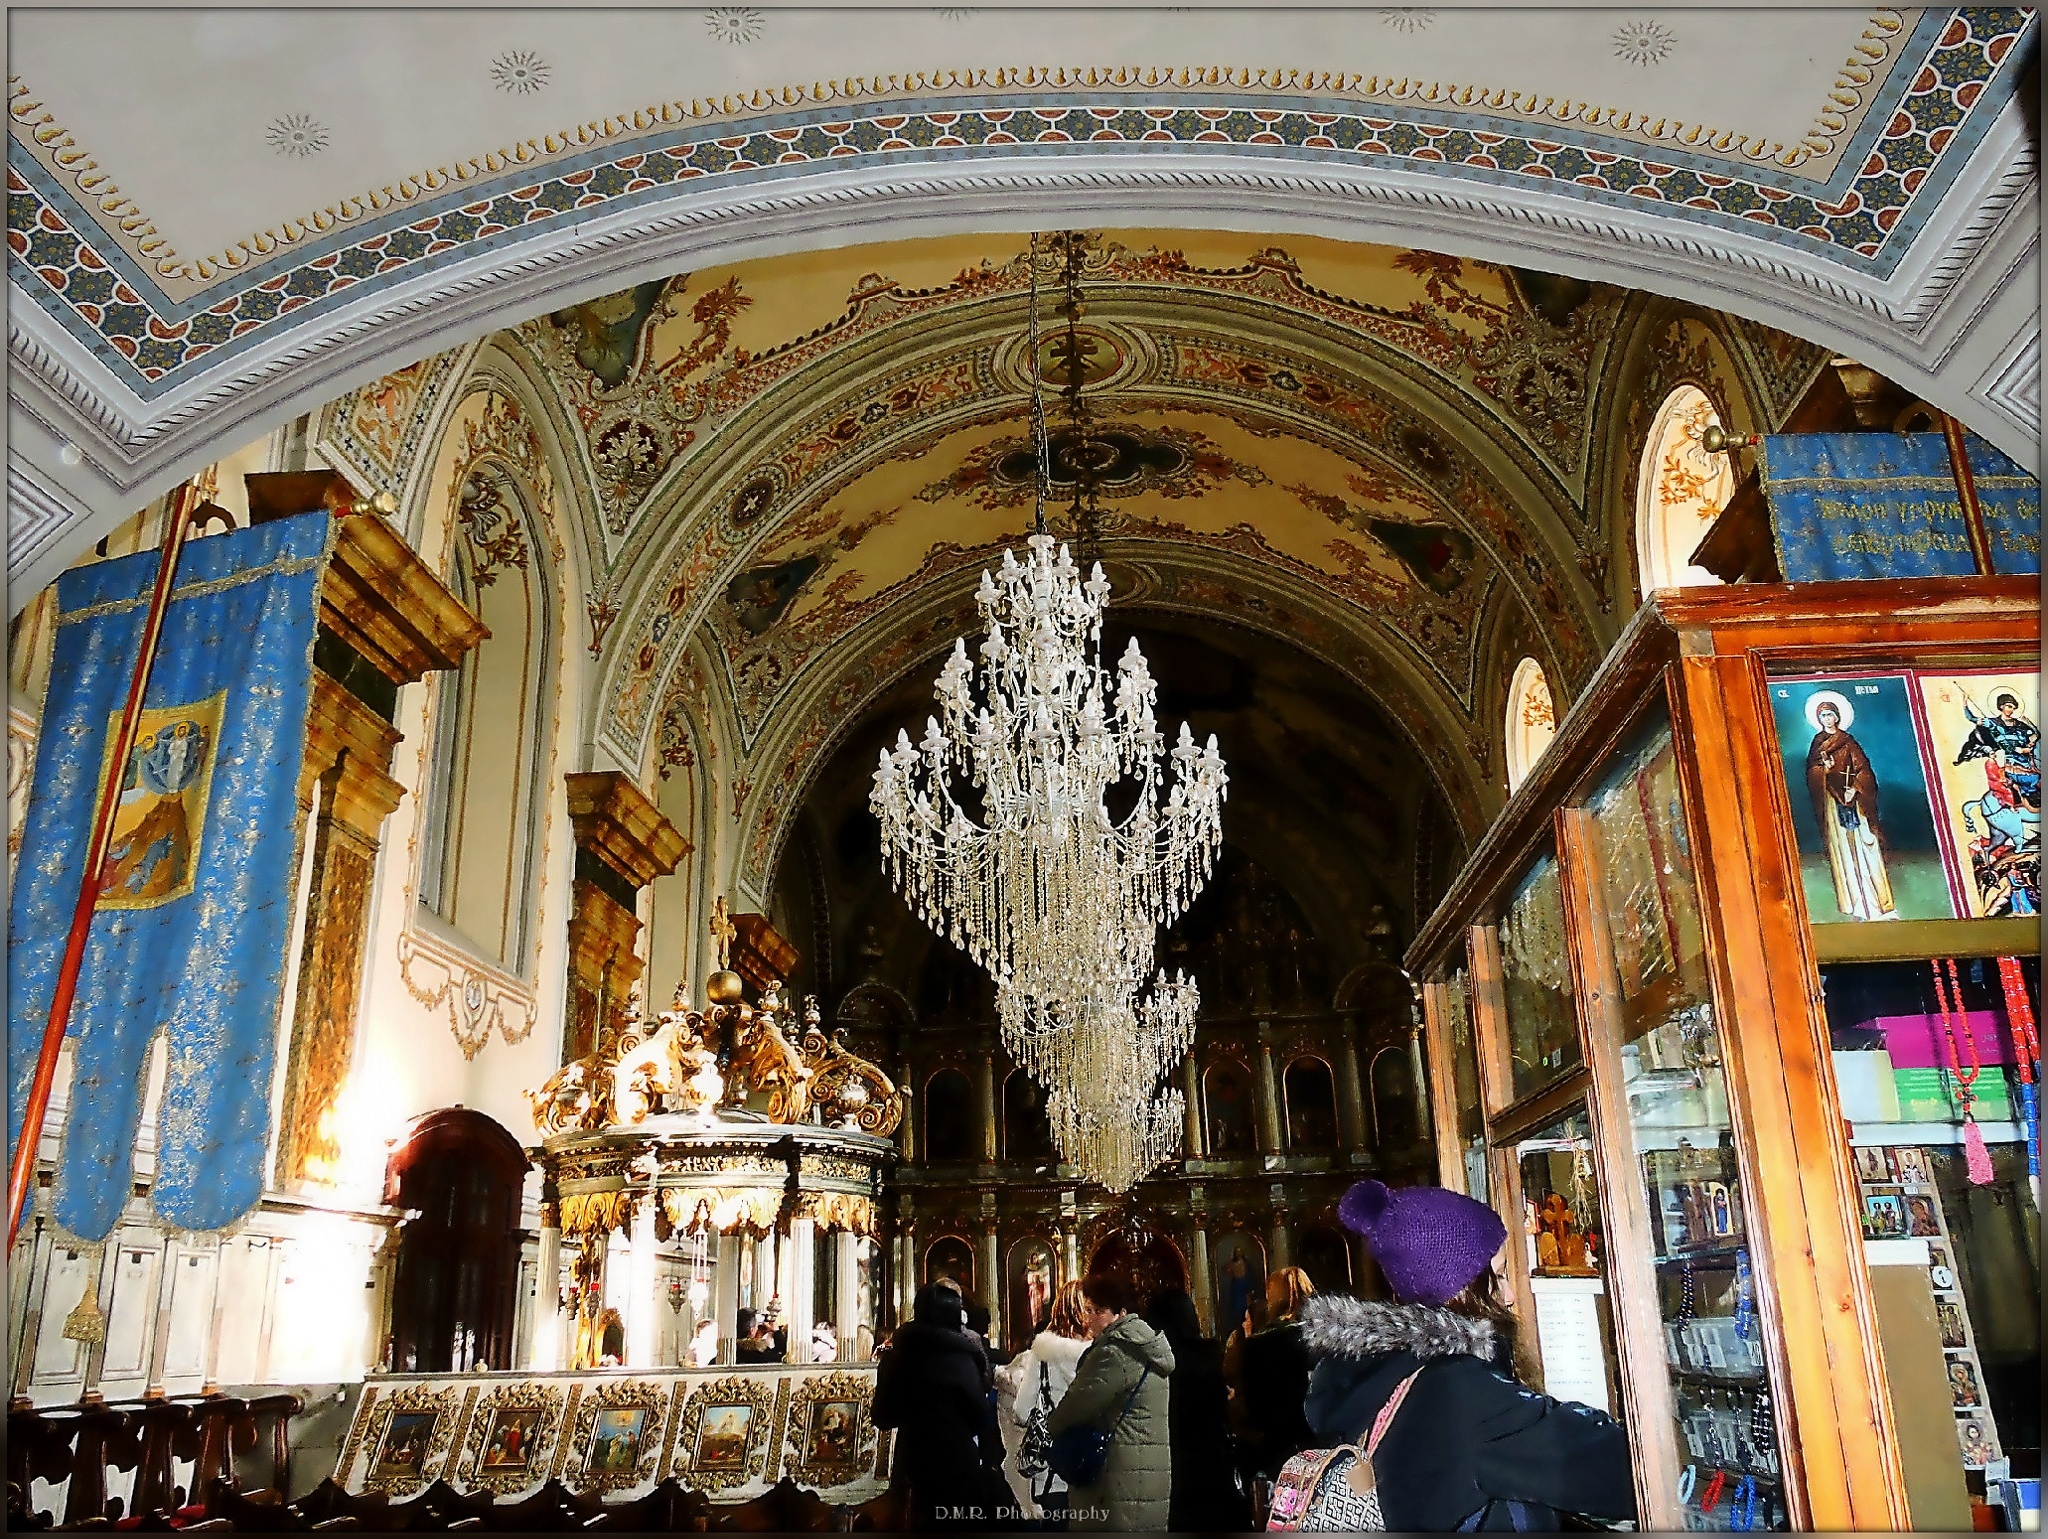 The interior of the Serbian Orthodox Congregational Church in Timisoara by Драгана М. Реџић